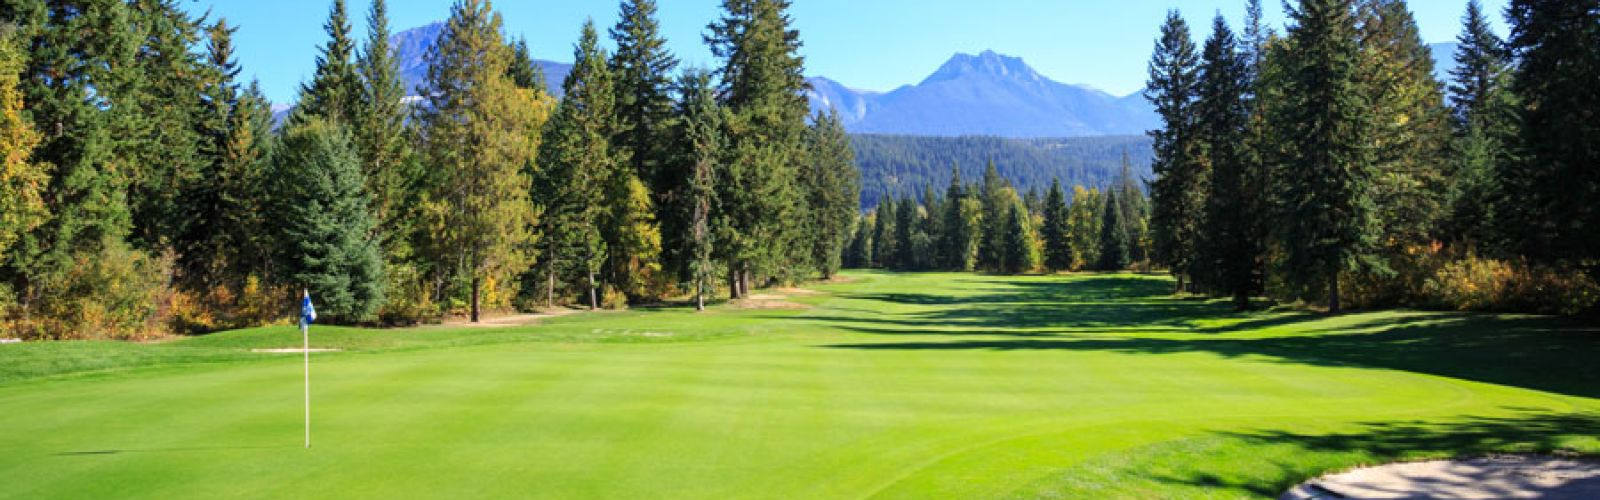 golf bc, canadian golf vacations in golden, bc